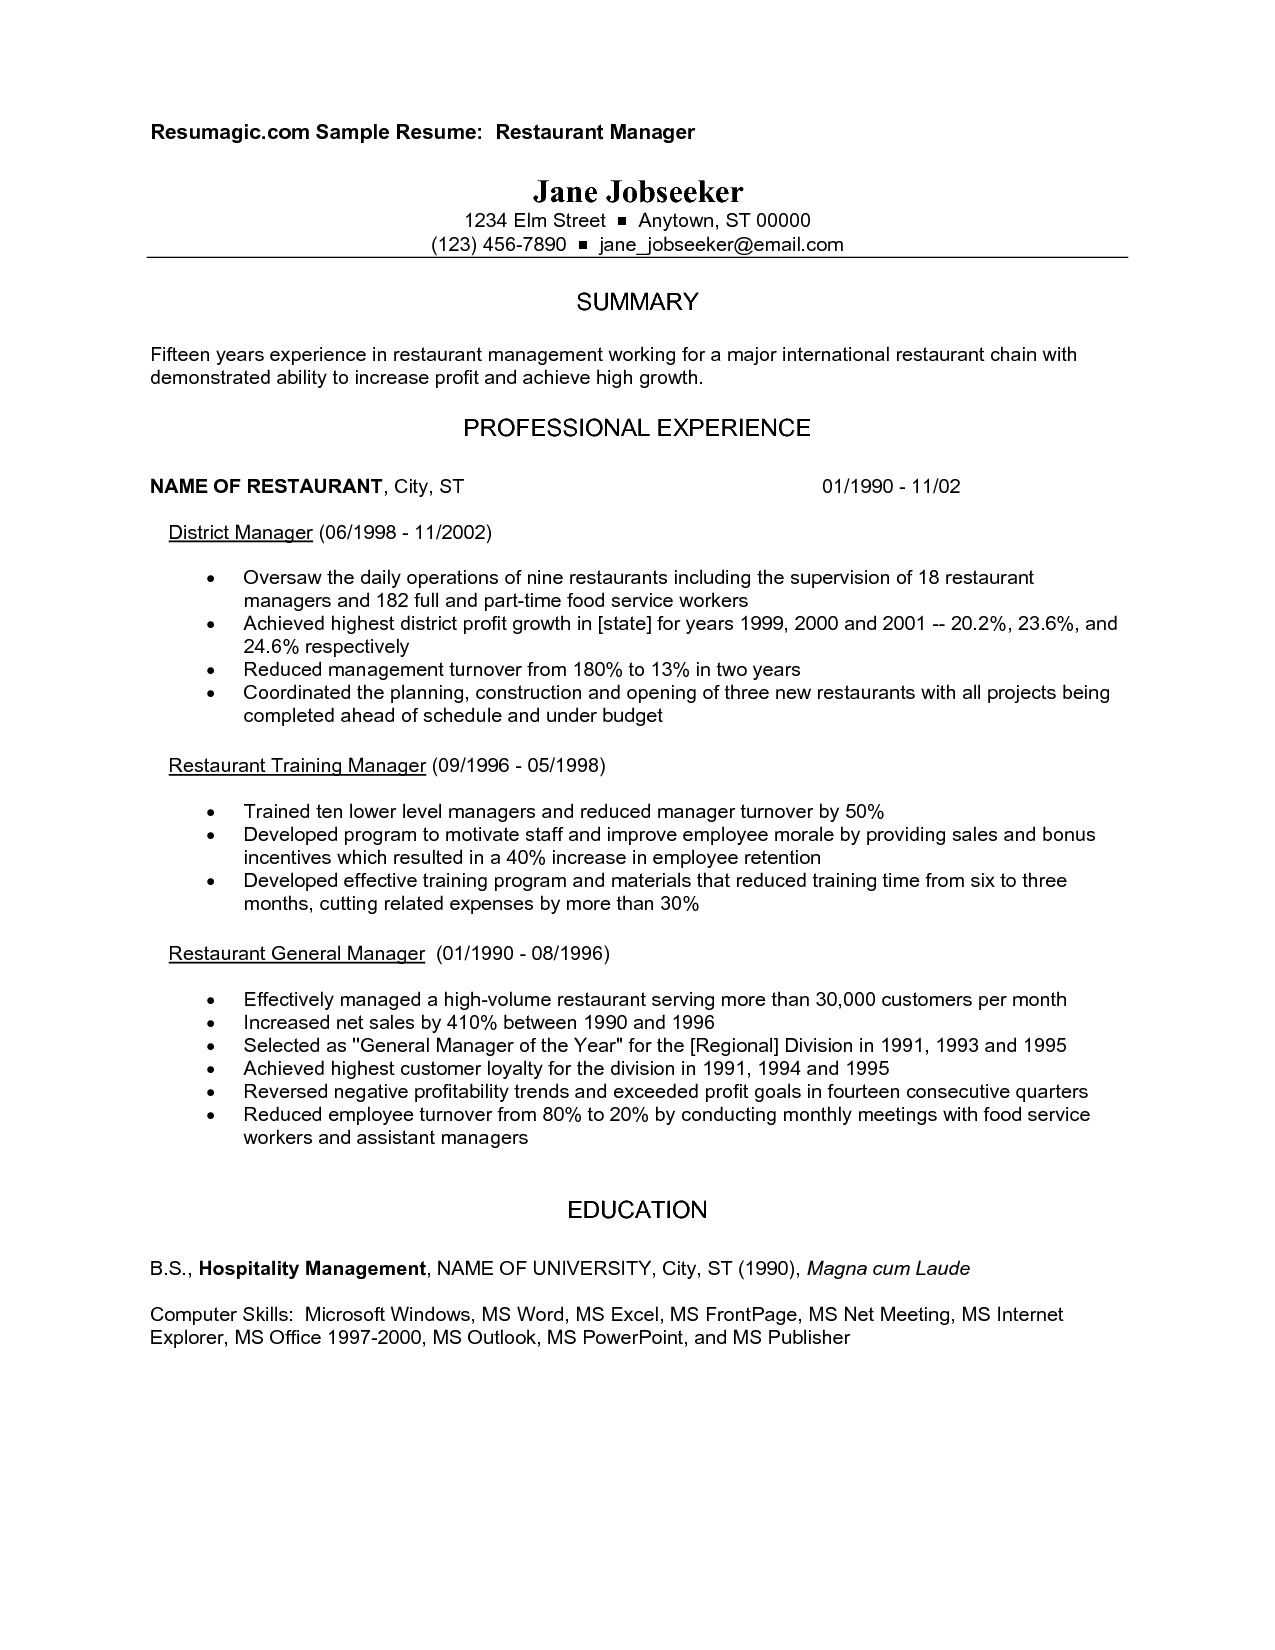 restaurant manager resume example